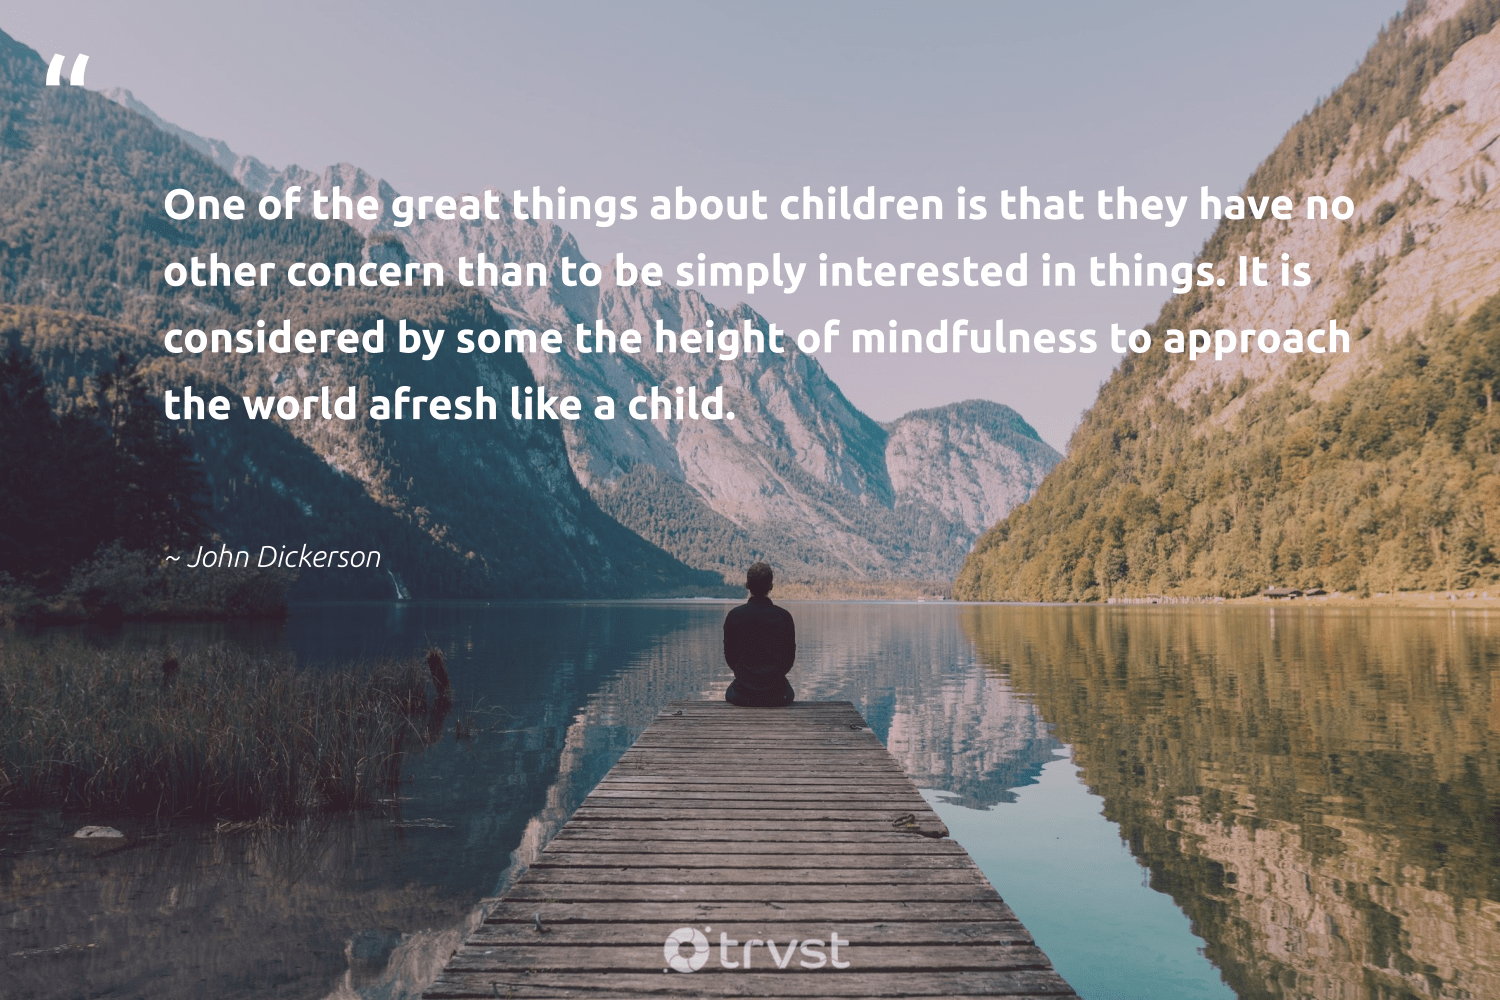 """""""One of the great things about children is that they have no other concern than to be simply interested in things. It is considered by some the height of mindfulness to approach the world afresh like a child.""""  - John Dickerson #trvst #quotes #children #mindfulness #entrepreneurmindset #meditation #changemakers #dotherightthing #goals #mindful #mindset #impact"""